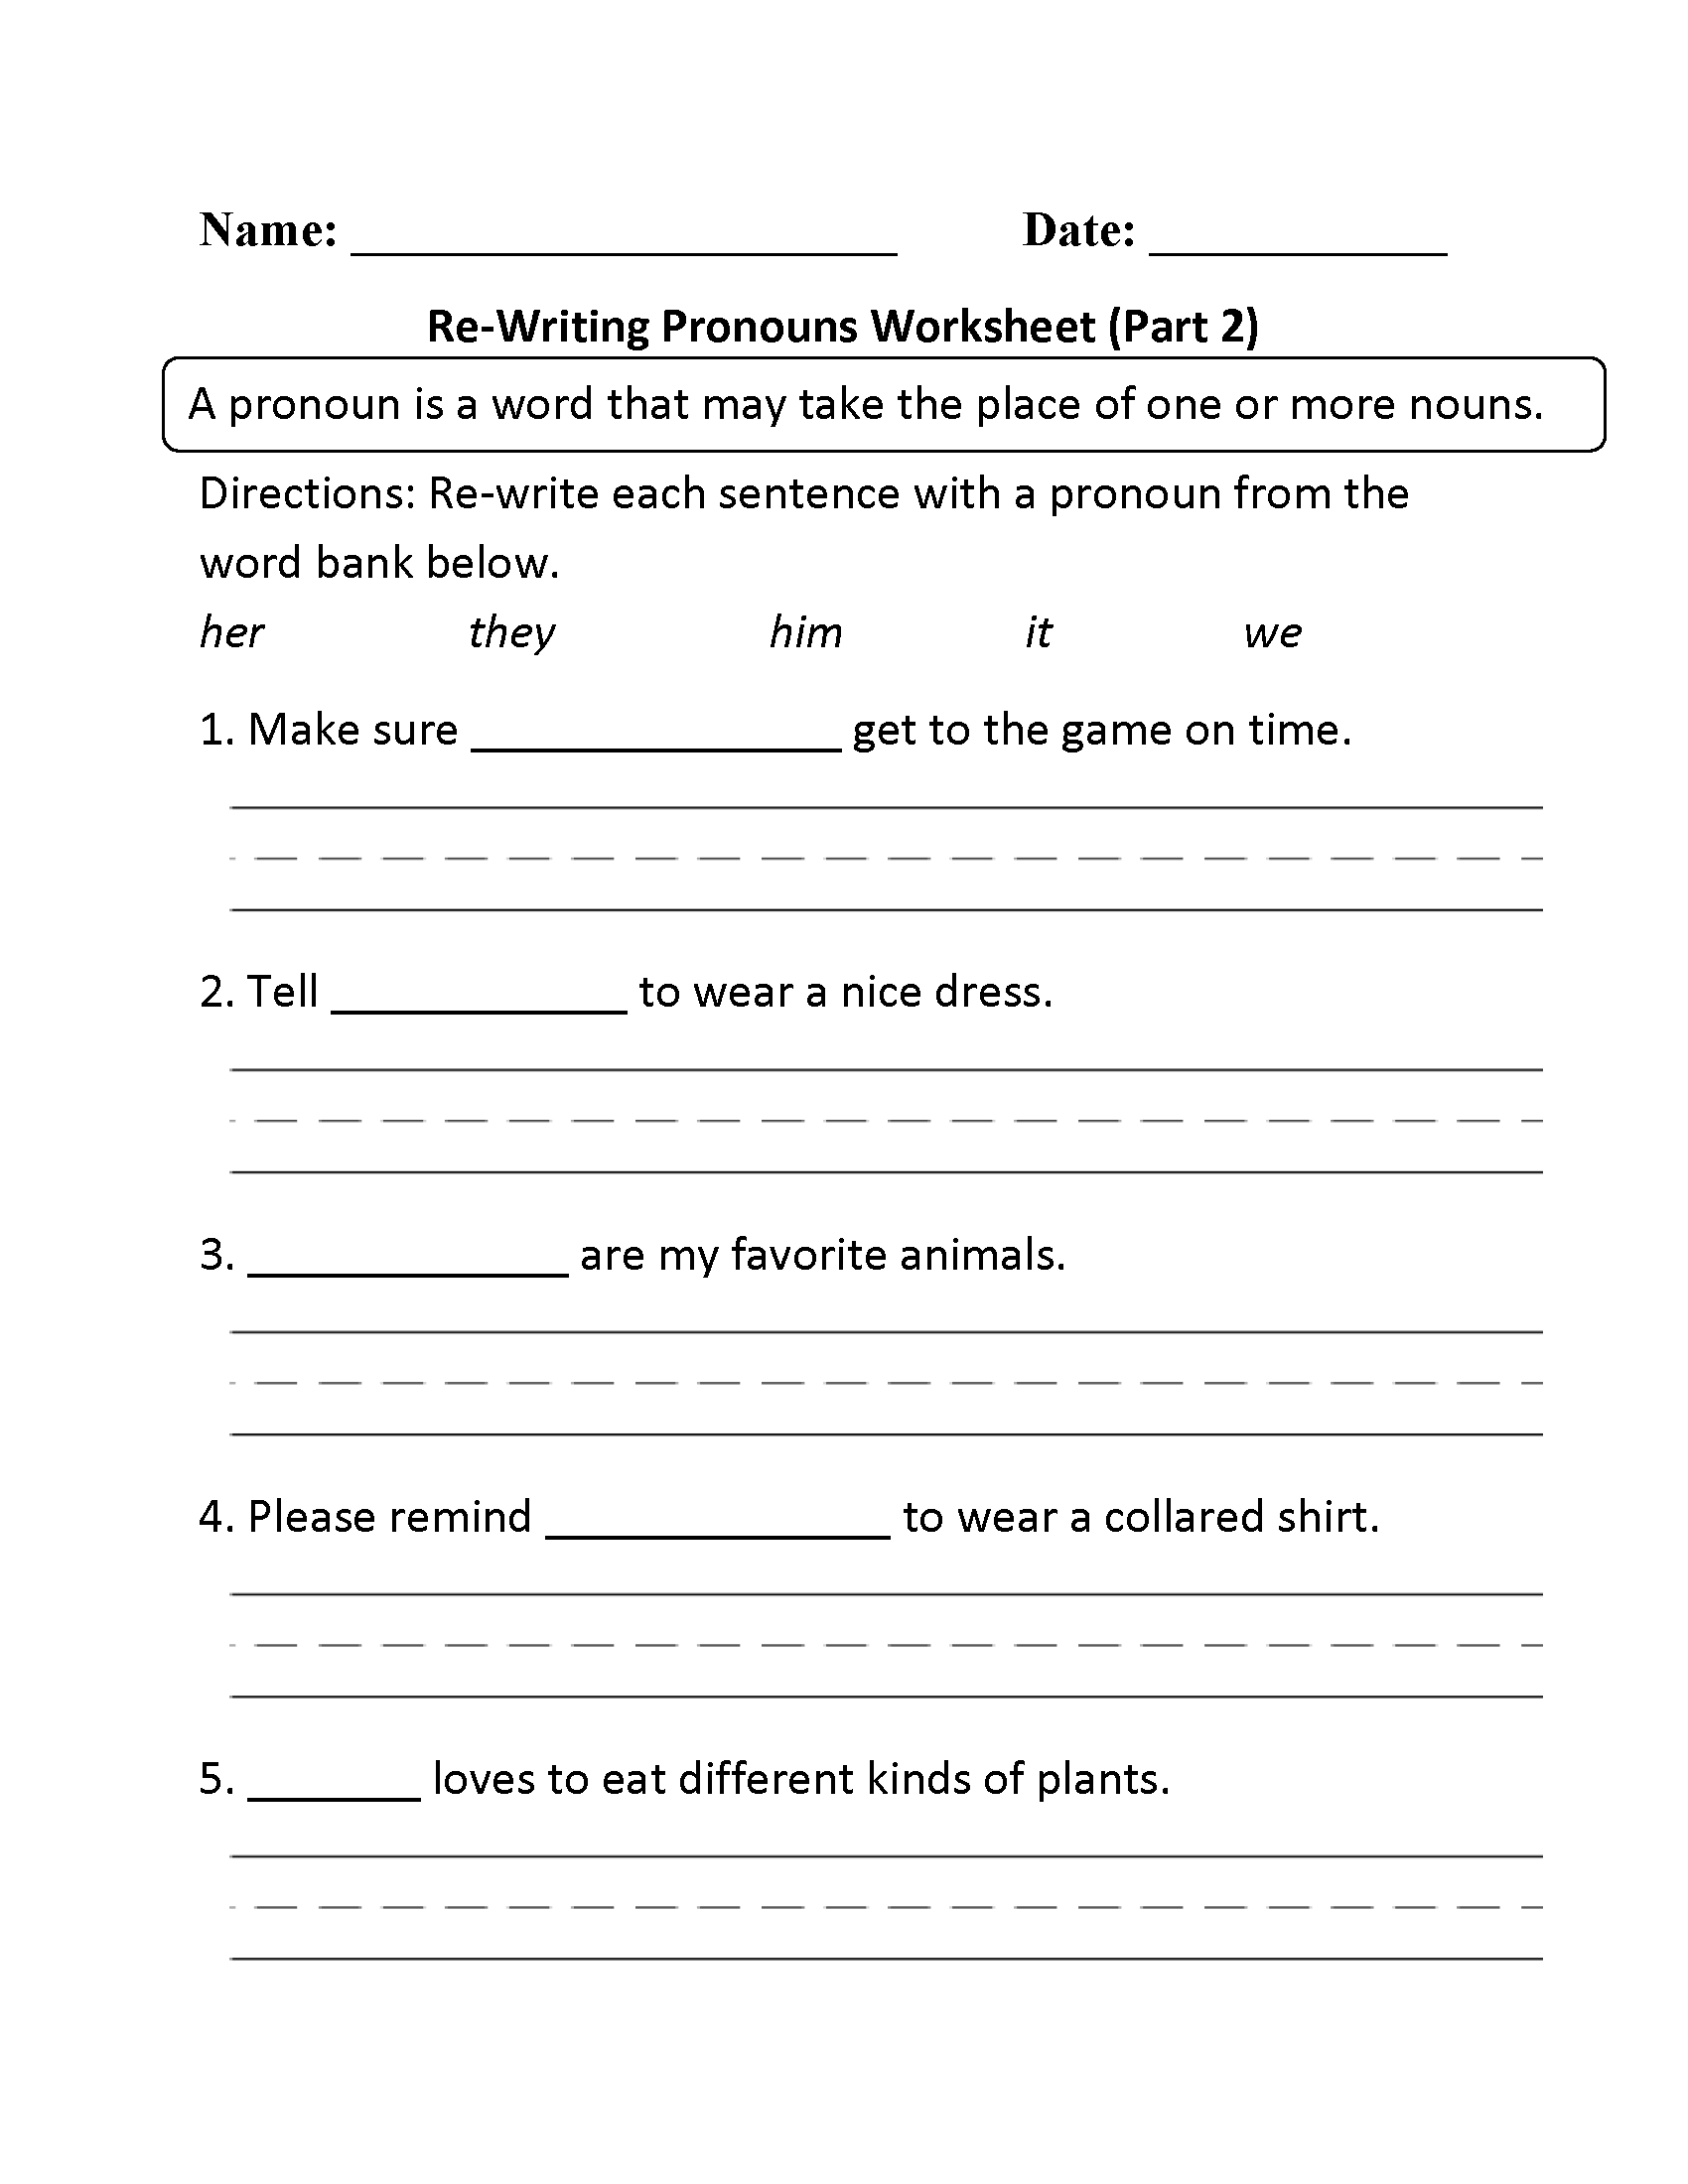 Regular Pronouns Worksheets | Re-Writing Pronouns Worksheet Part 2